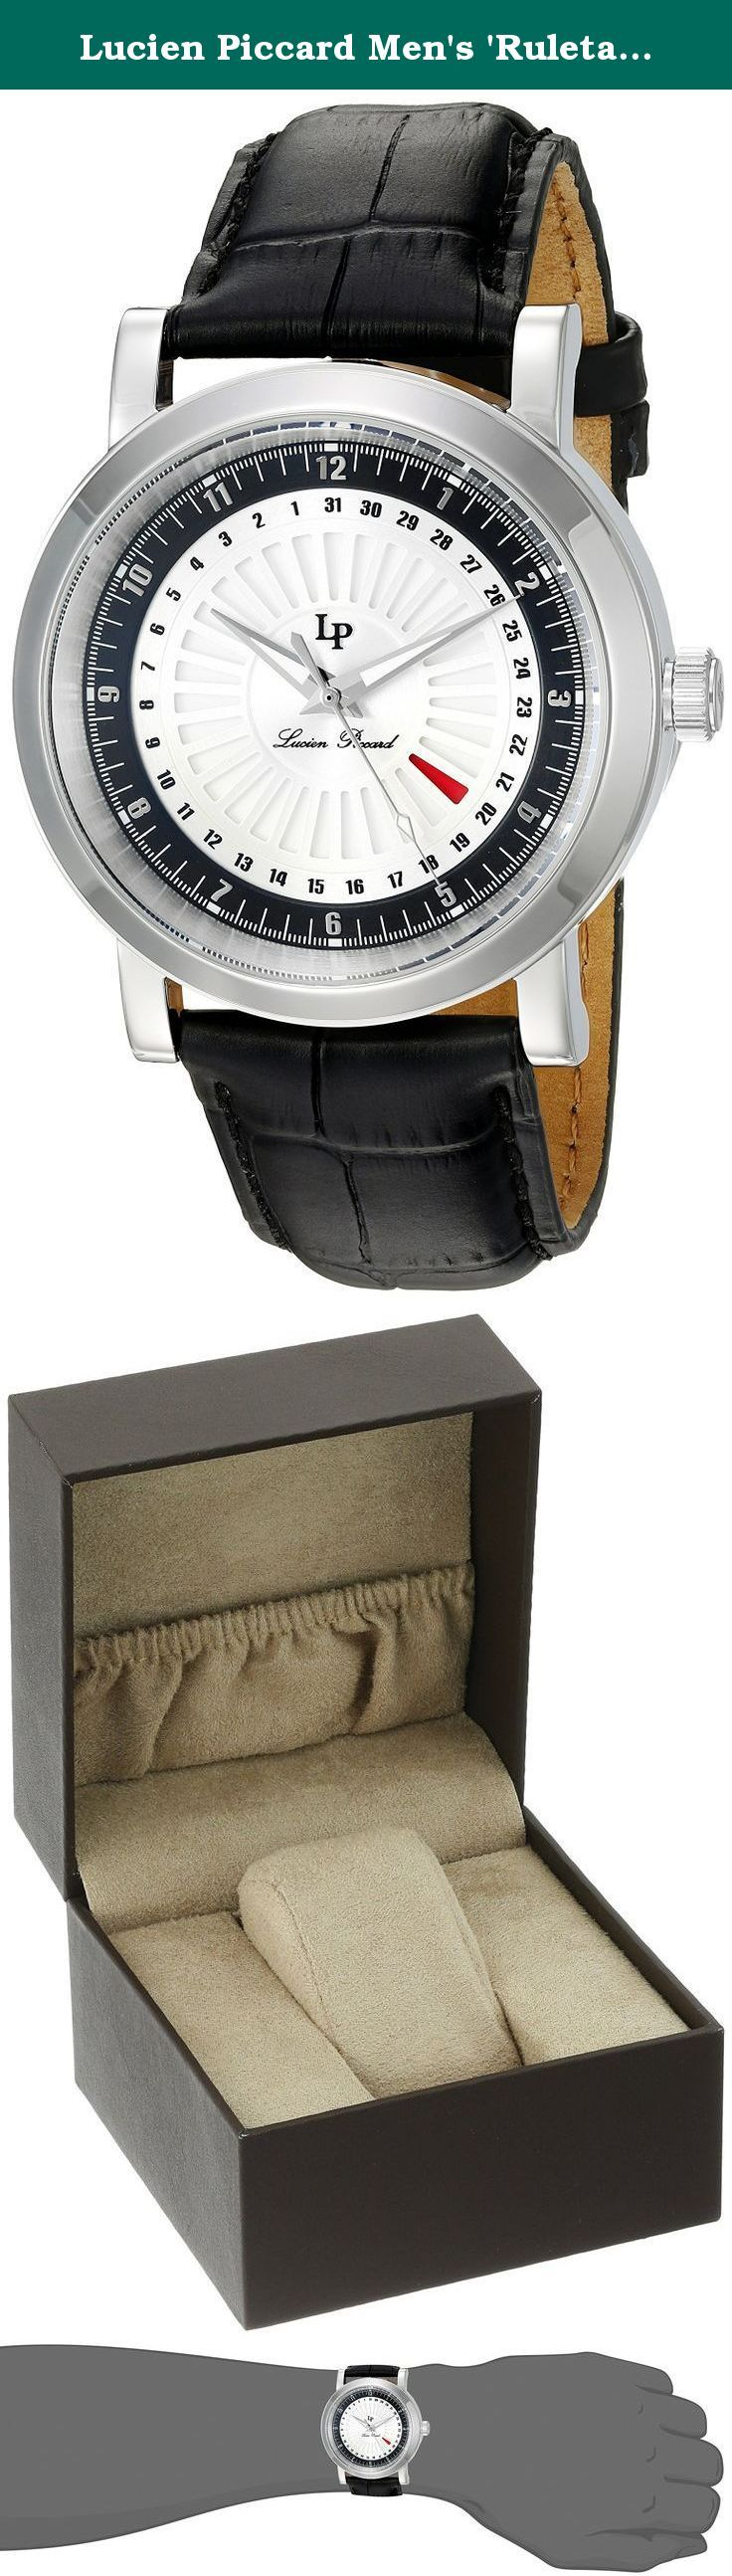 Lucien Piccard Men's 'Ruleta' Quartz Stainless Steel and Leather Casual Watch, Color:Black (Model: LP-40014-02S-BC). All the right moves for today's man from new Lucien Piccard Ruleta collection. Classic contemporary men's watch offers masculine, debonair lines with a perfectly round polished steel case, contoured extended lugs and a handsome alligator-textured leather strap. The highly intricate dial inspired by roulette wheels from a Monte Carlo casino features sword hands, Arabic…